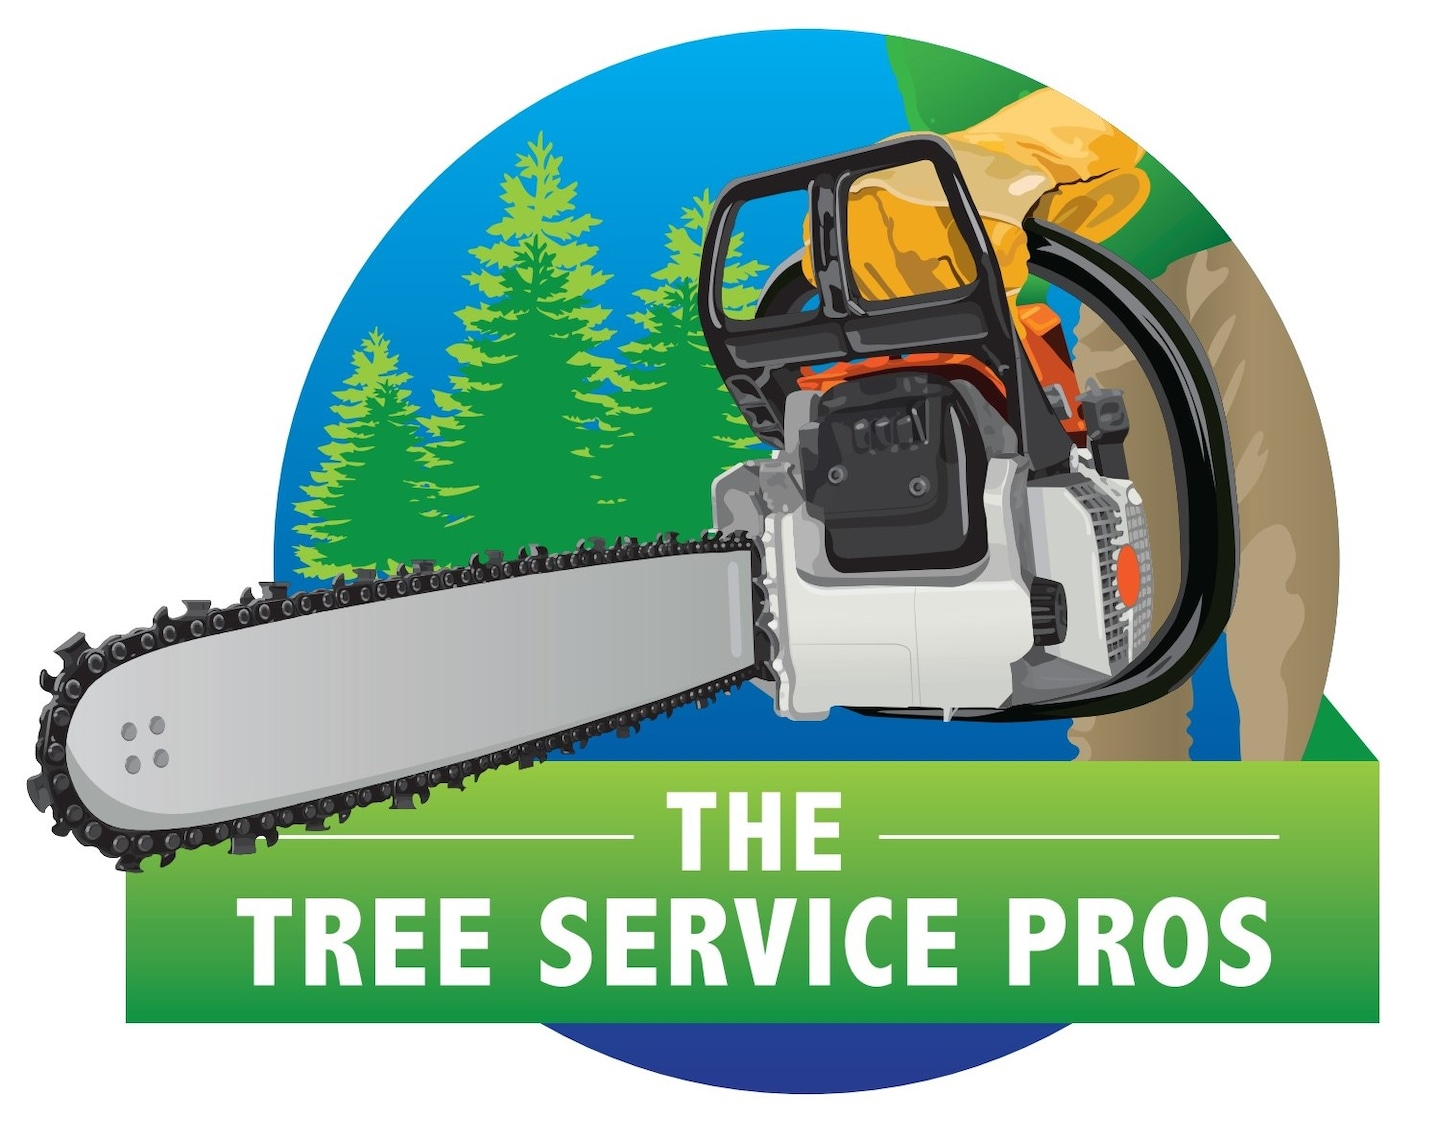 The Tree Service Pros